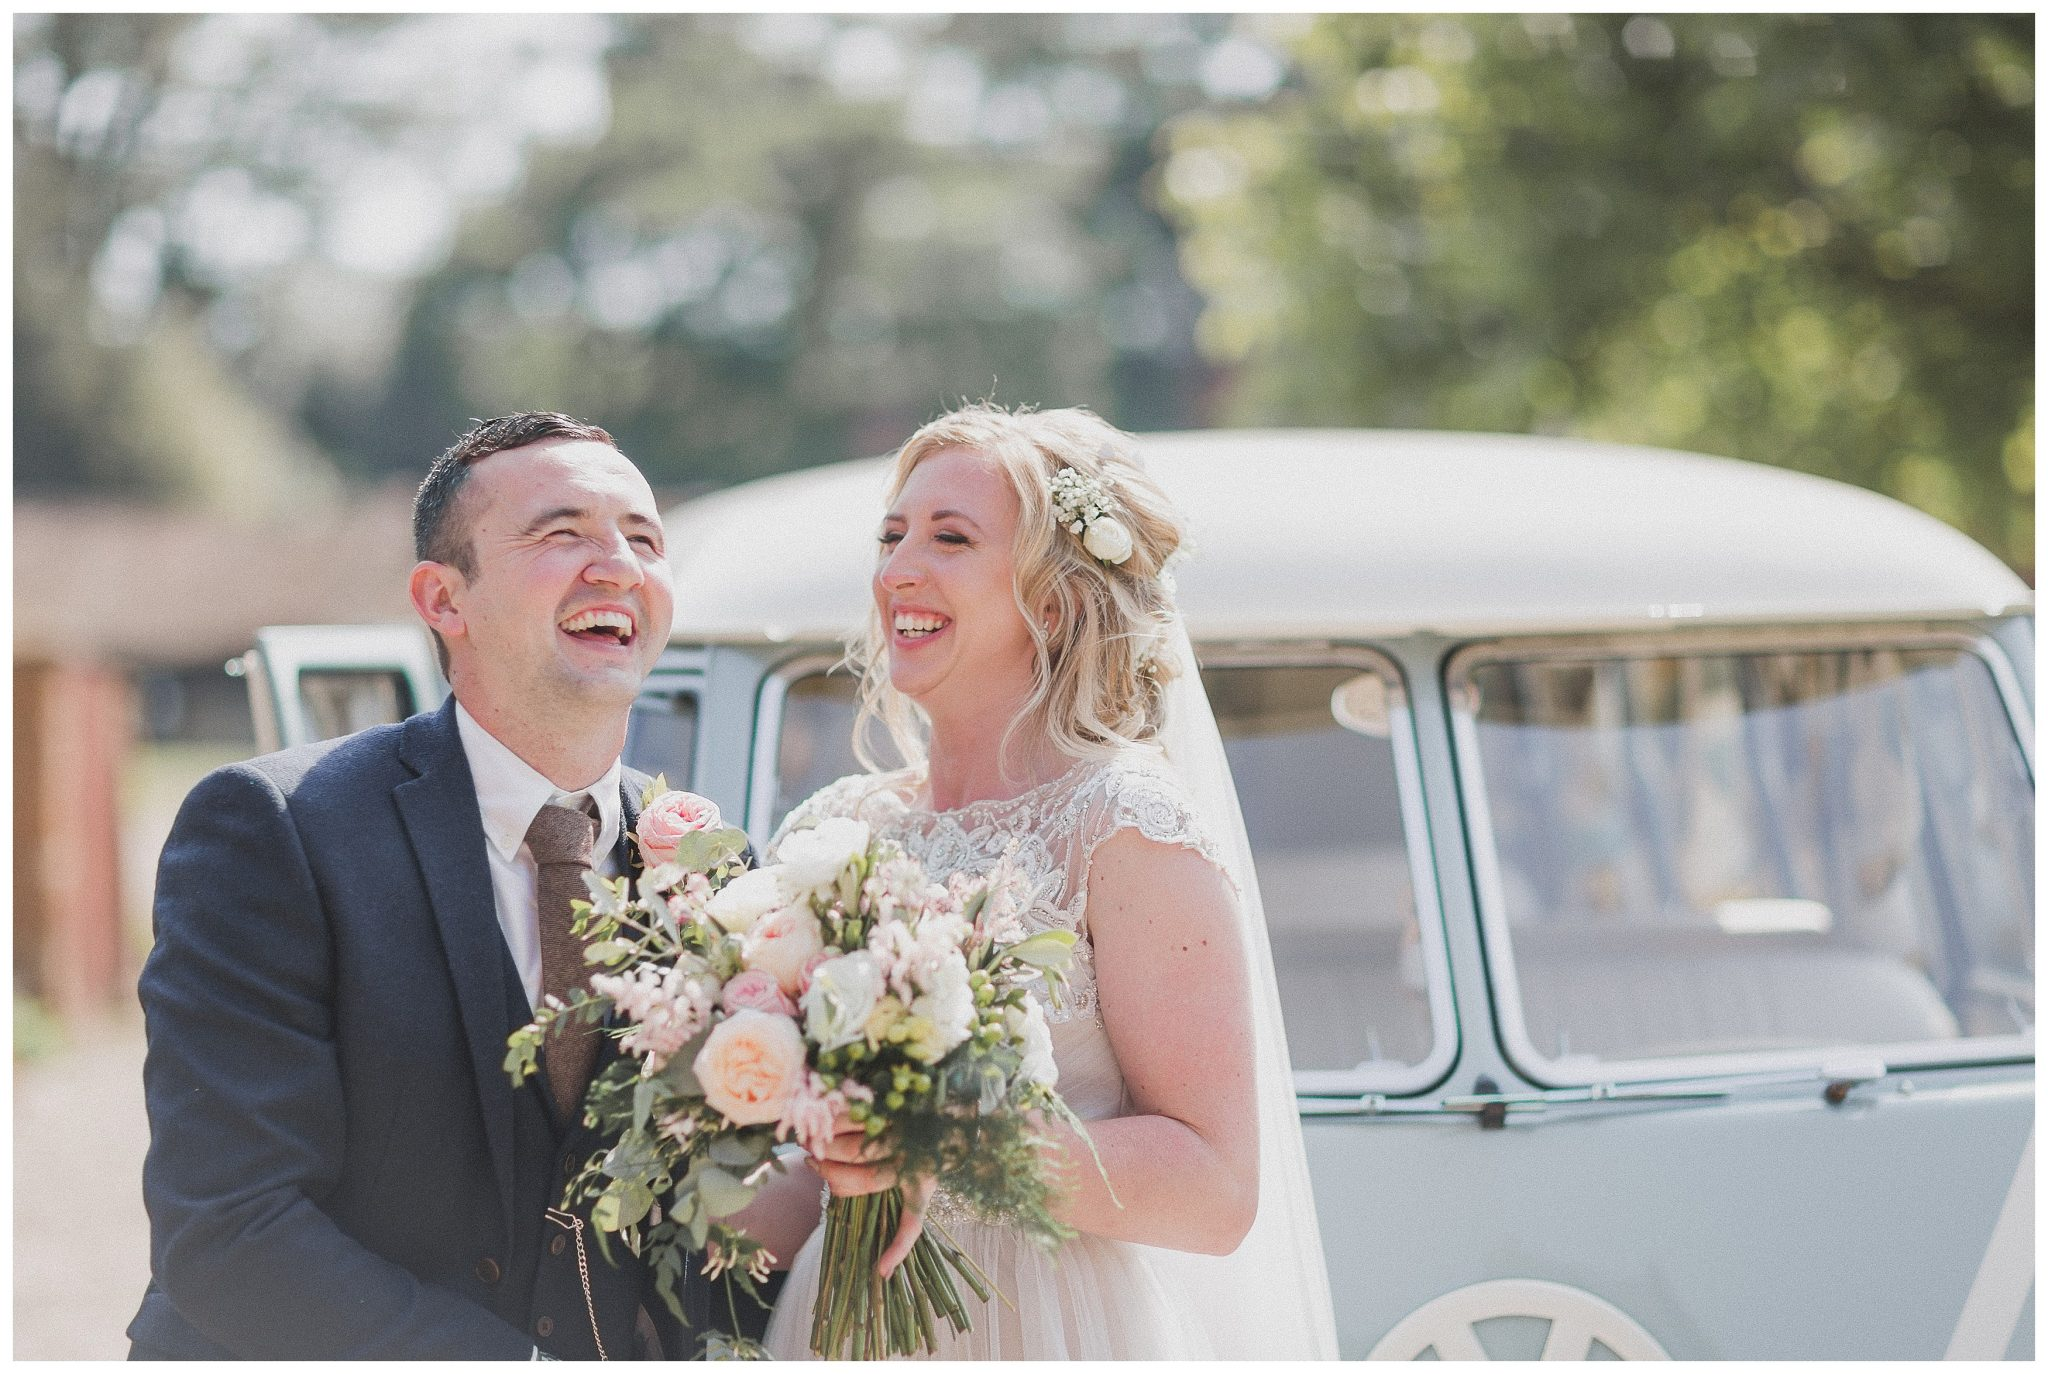 Bride and groom laughing by their VW van.